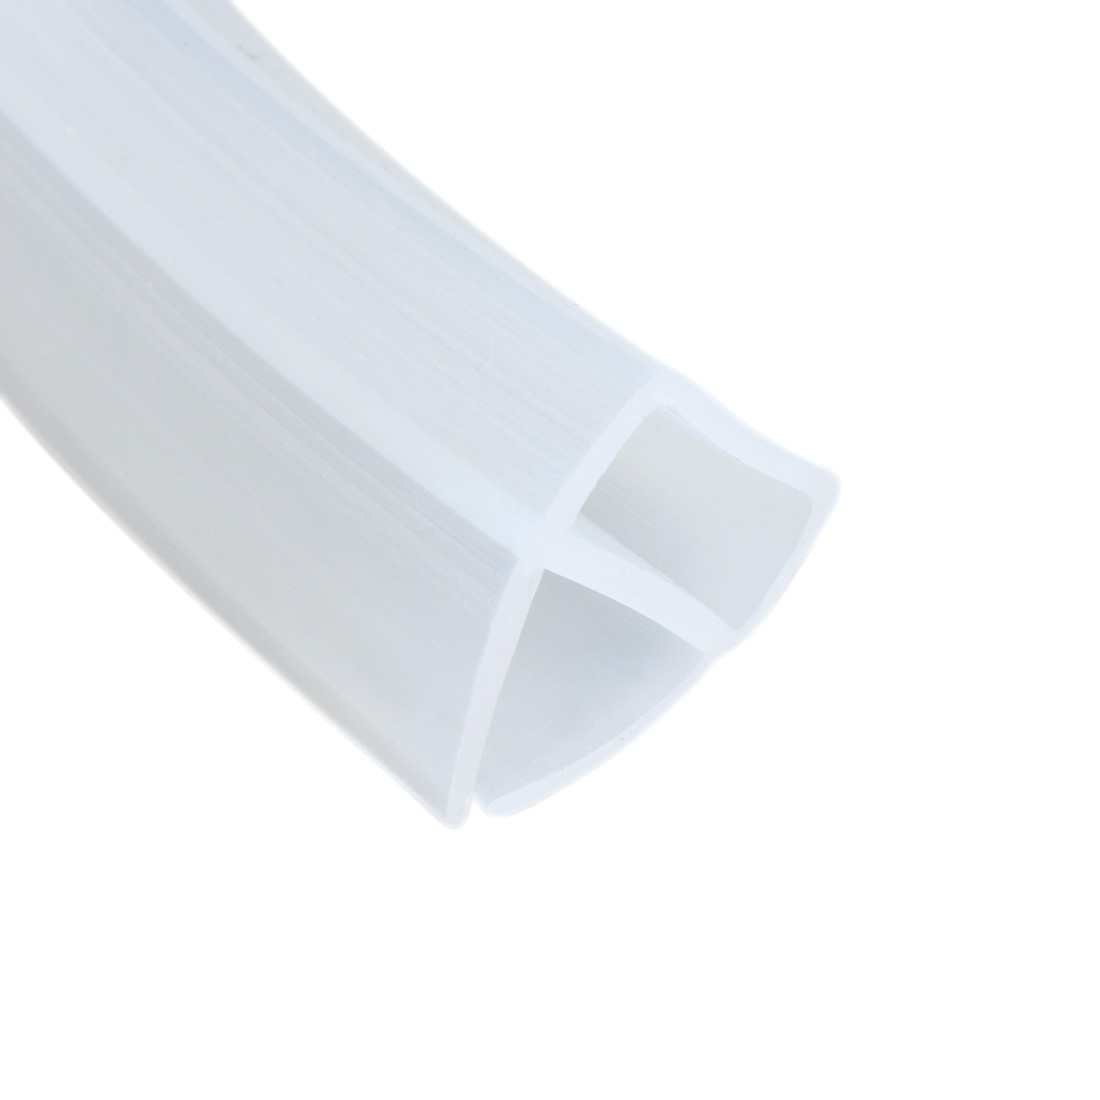 78.7-inch U Shaped Frameless Window Shower Door Seal Clear for 3/8-inch Glass